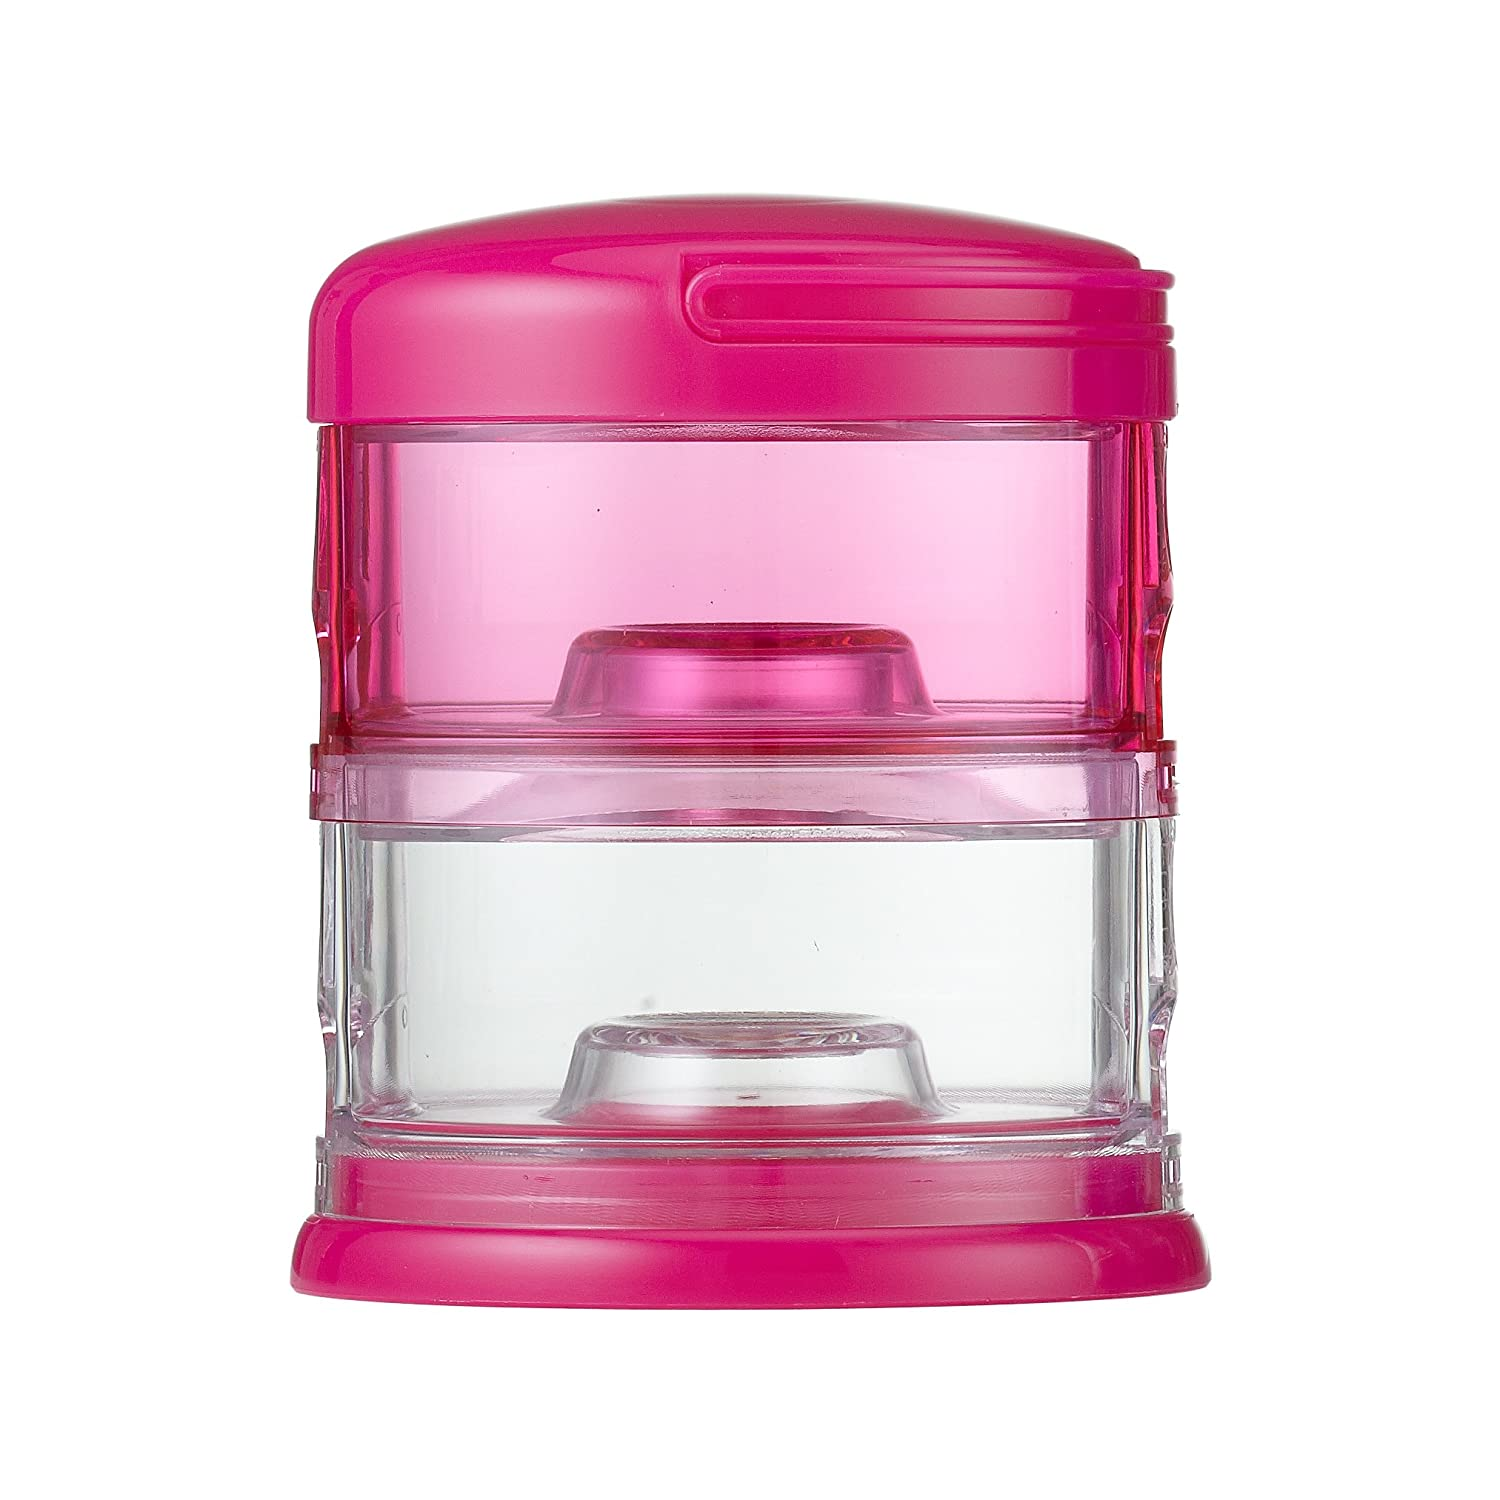 Innobaby Packin' Smart Stackable and Portable Storage System for Formula, Baby Snacks and More. 2 Stackable Cups in Pink. BPA Free, 5 Ounce